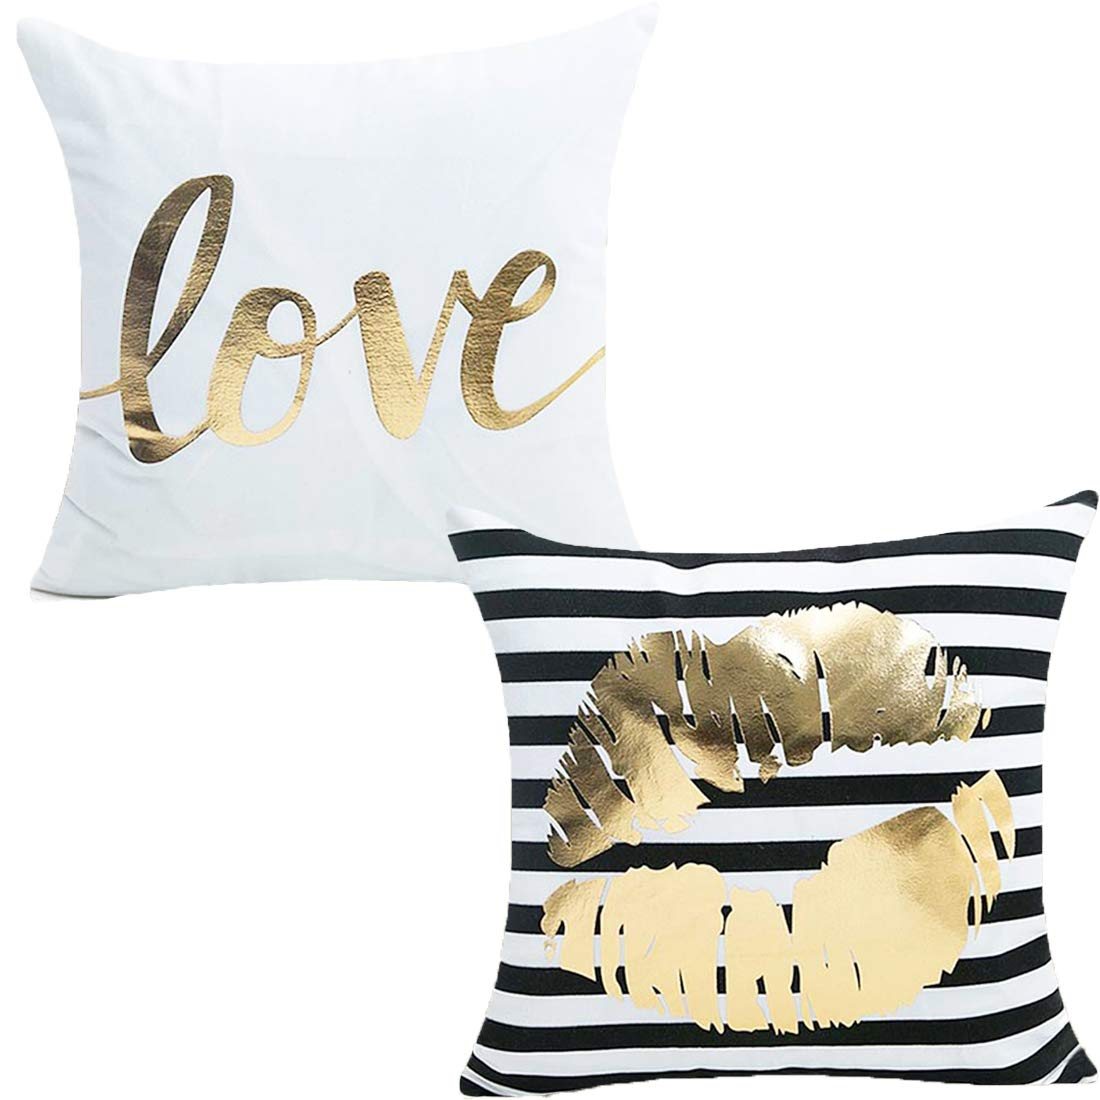 Misaya Bronzing Flannelette Home Pillowcase 18x18 Decorative Cushion Pillow Cover Gold Throw Pillow Covers Set of 2 (Love & Lips)